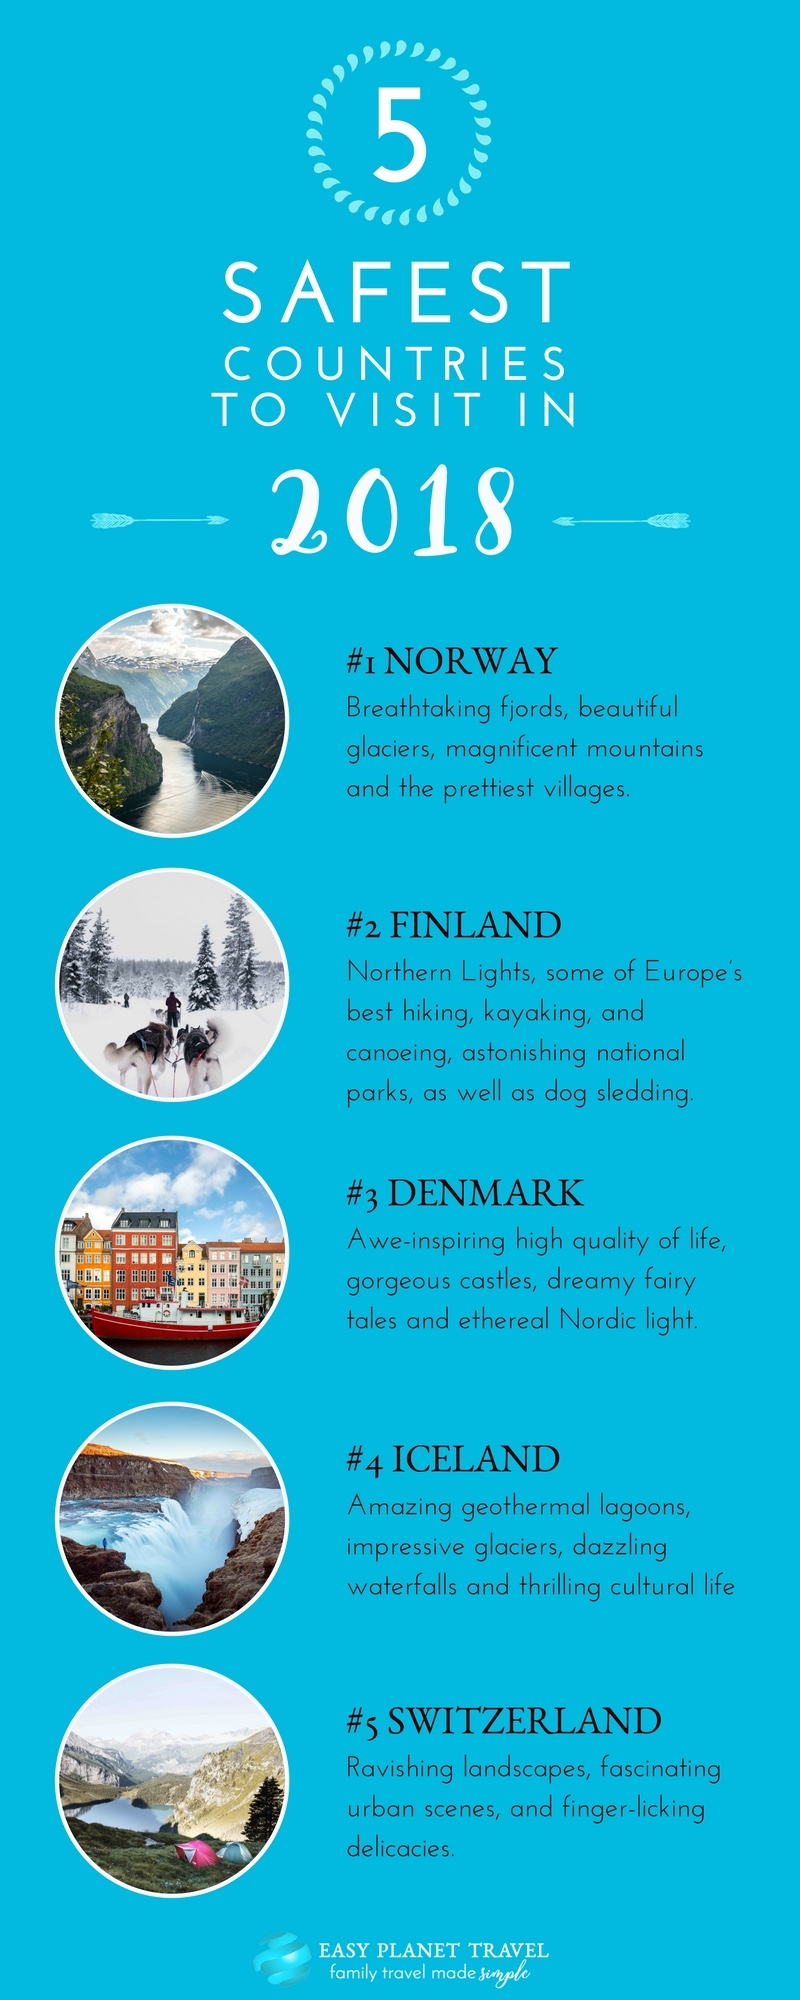 World's 5 Safest Countries to Visit in 2018